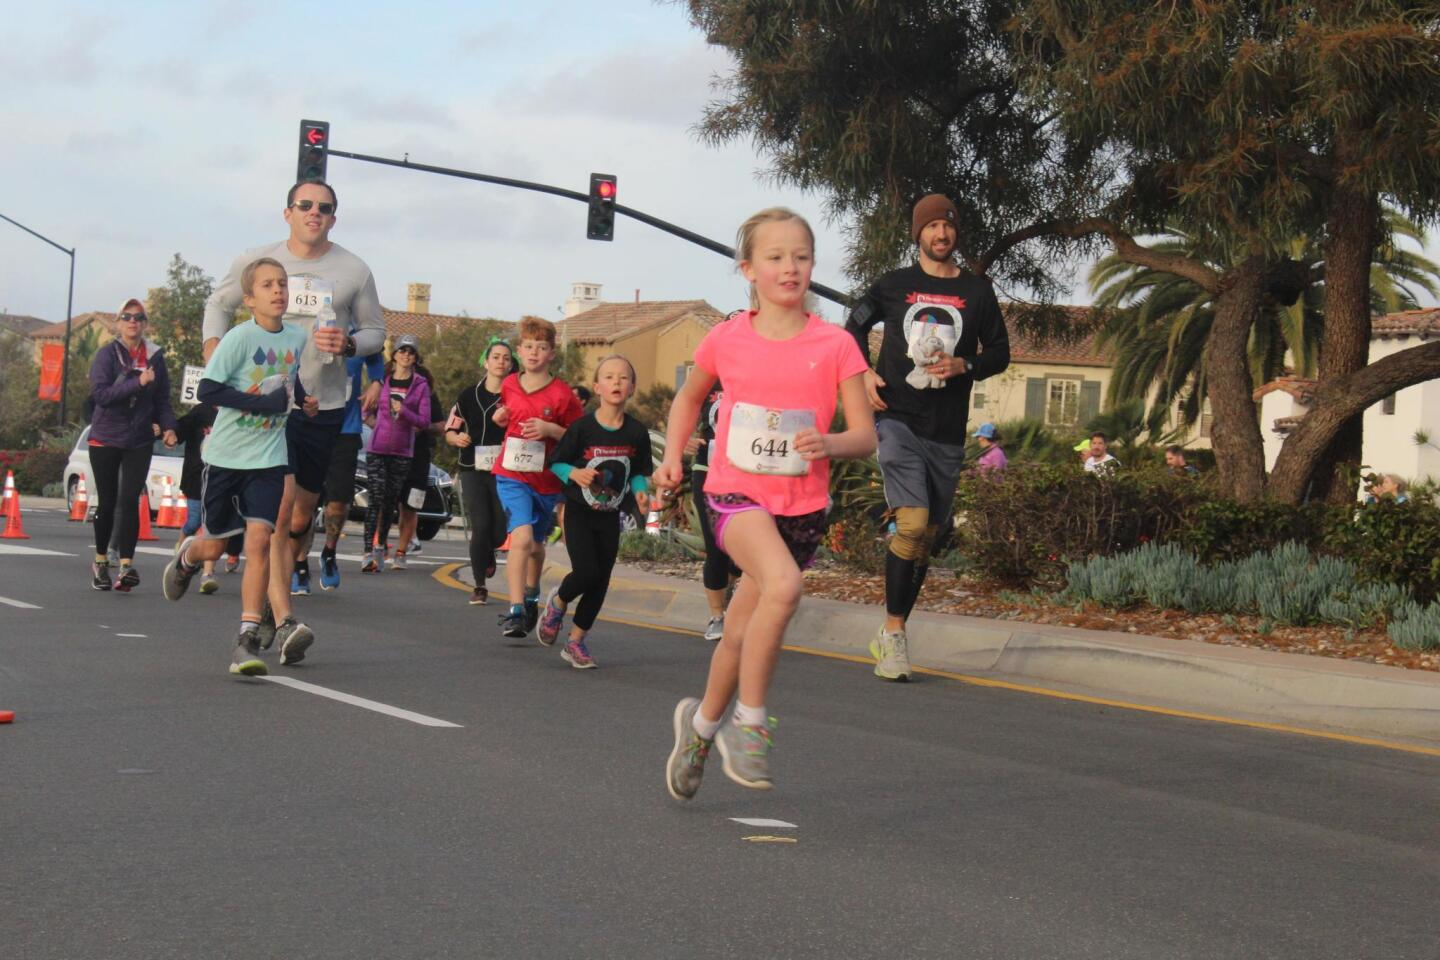 A young runner on Carmel Valley Road.